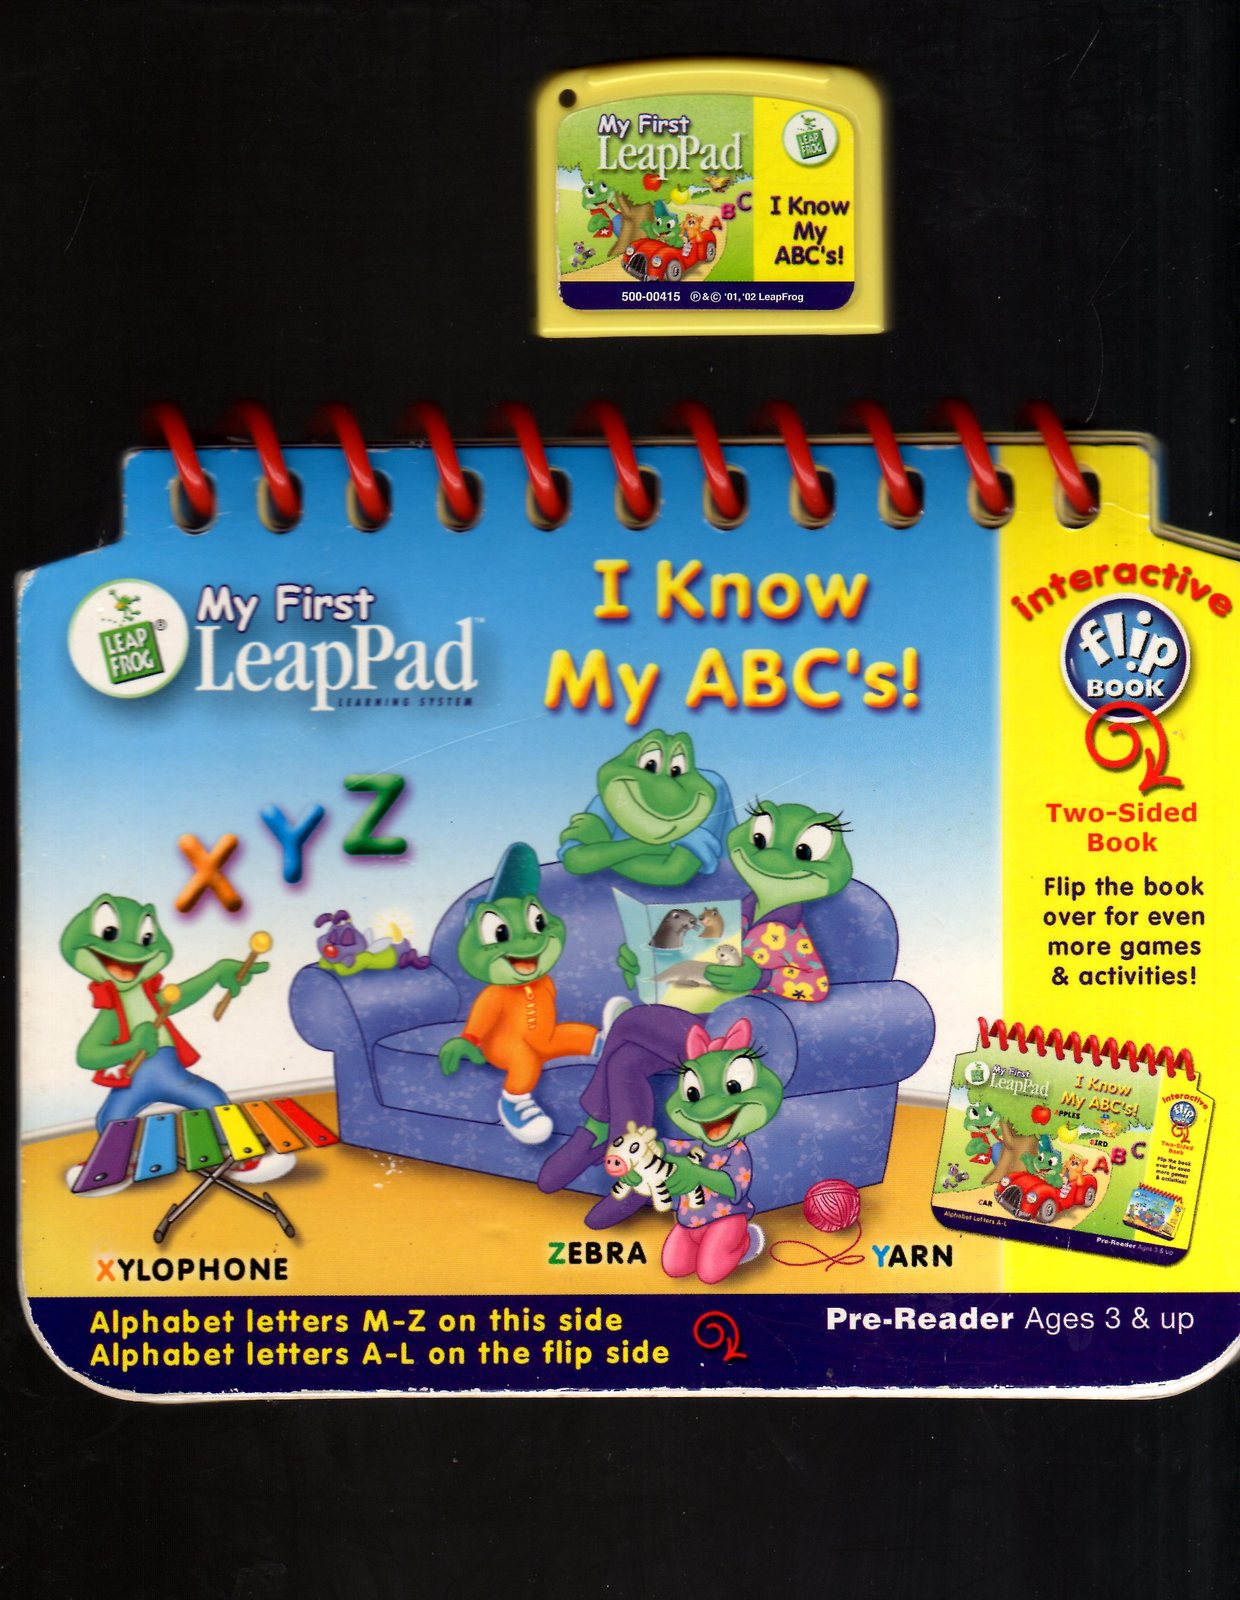 LeapFrog - My First LeapPad - I Know My ABC's